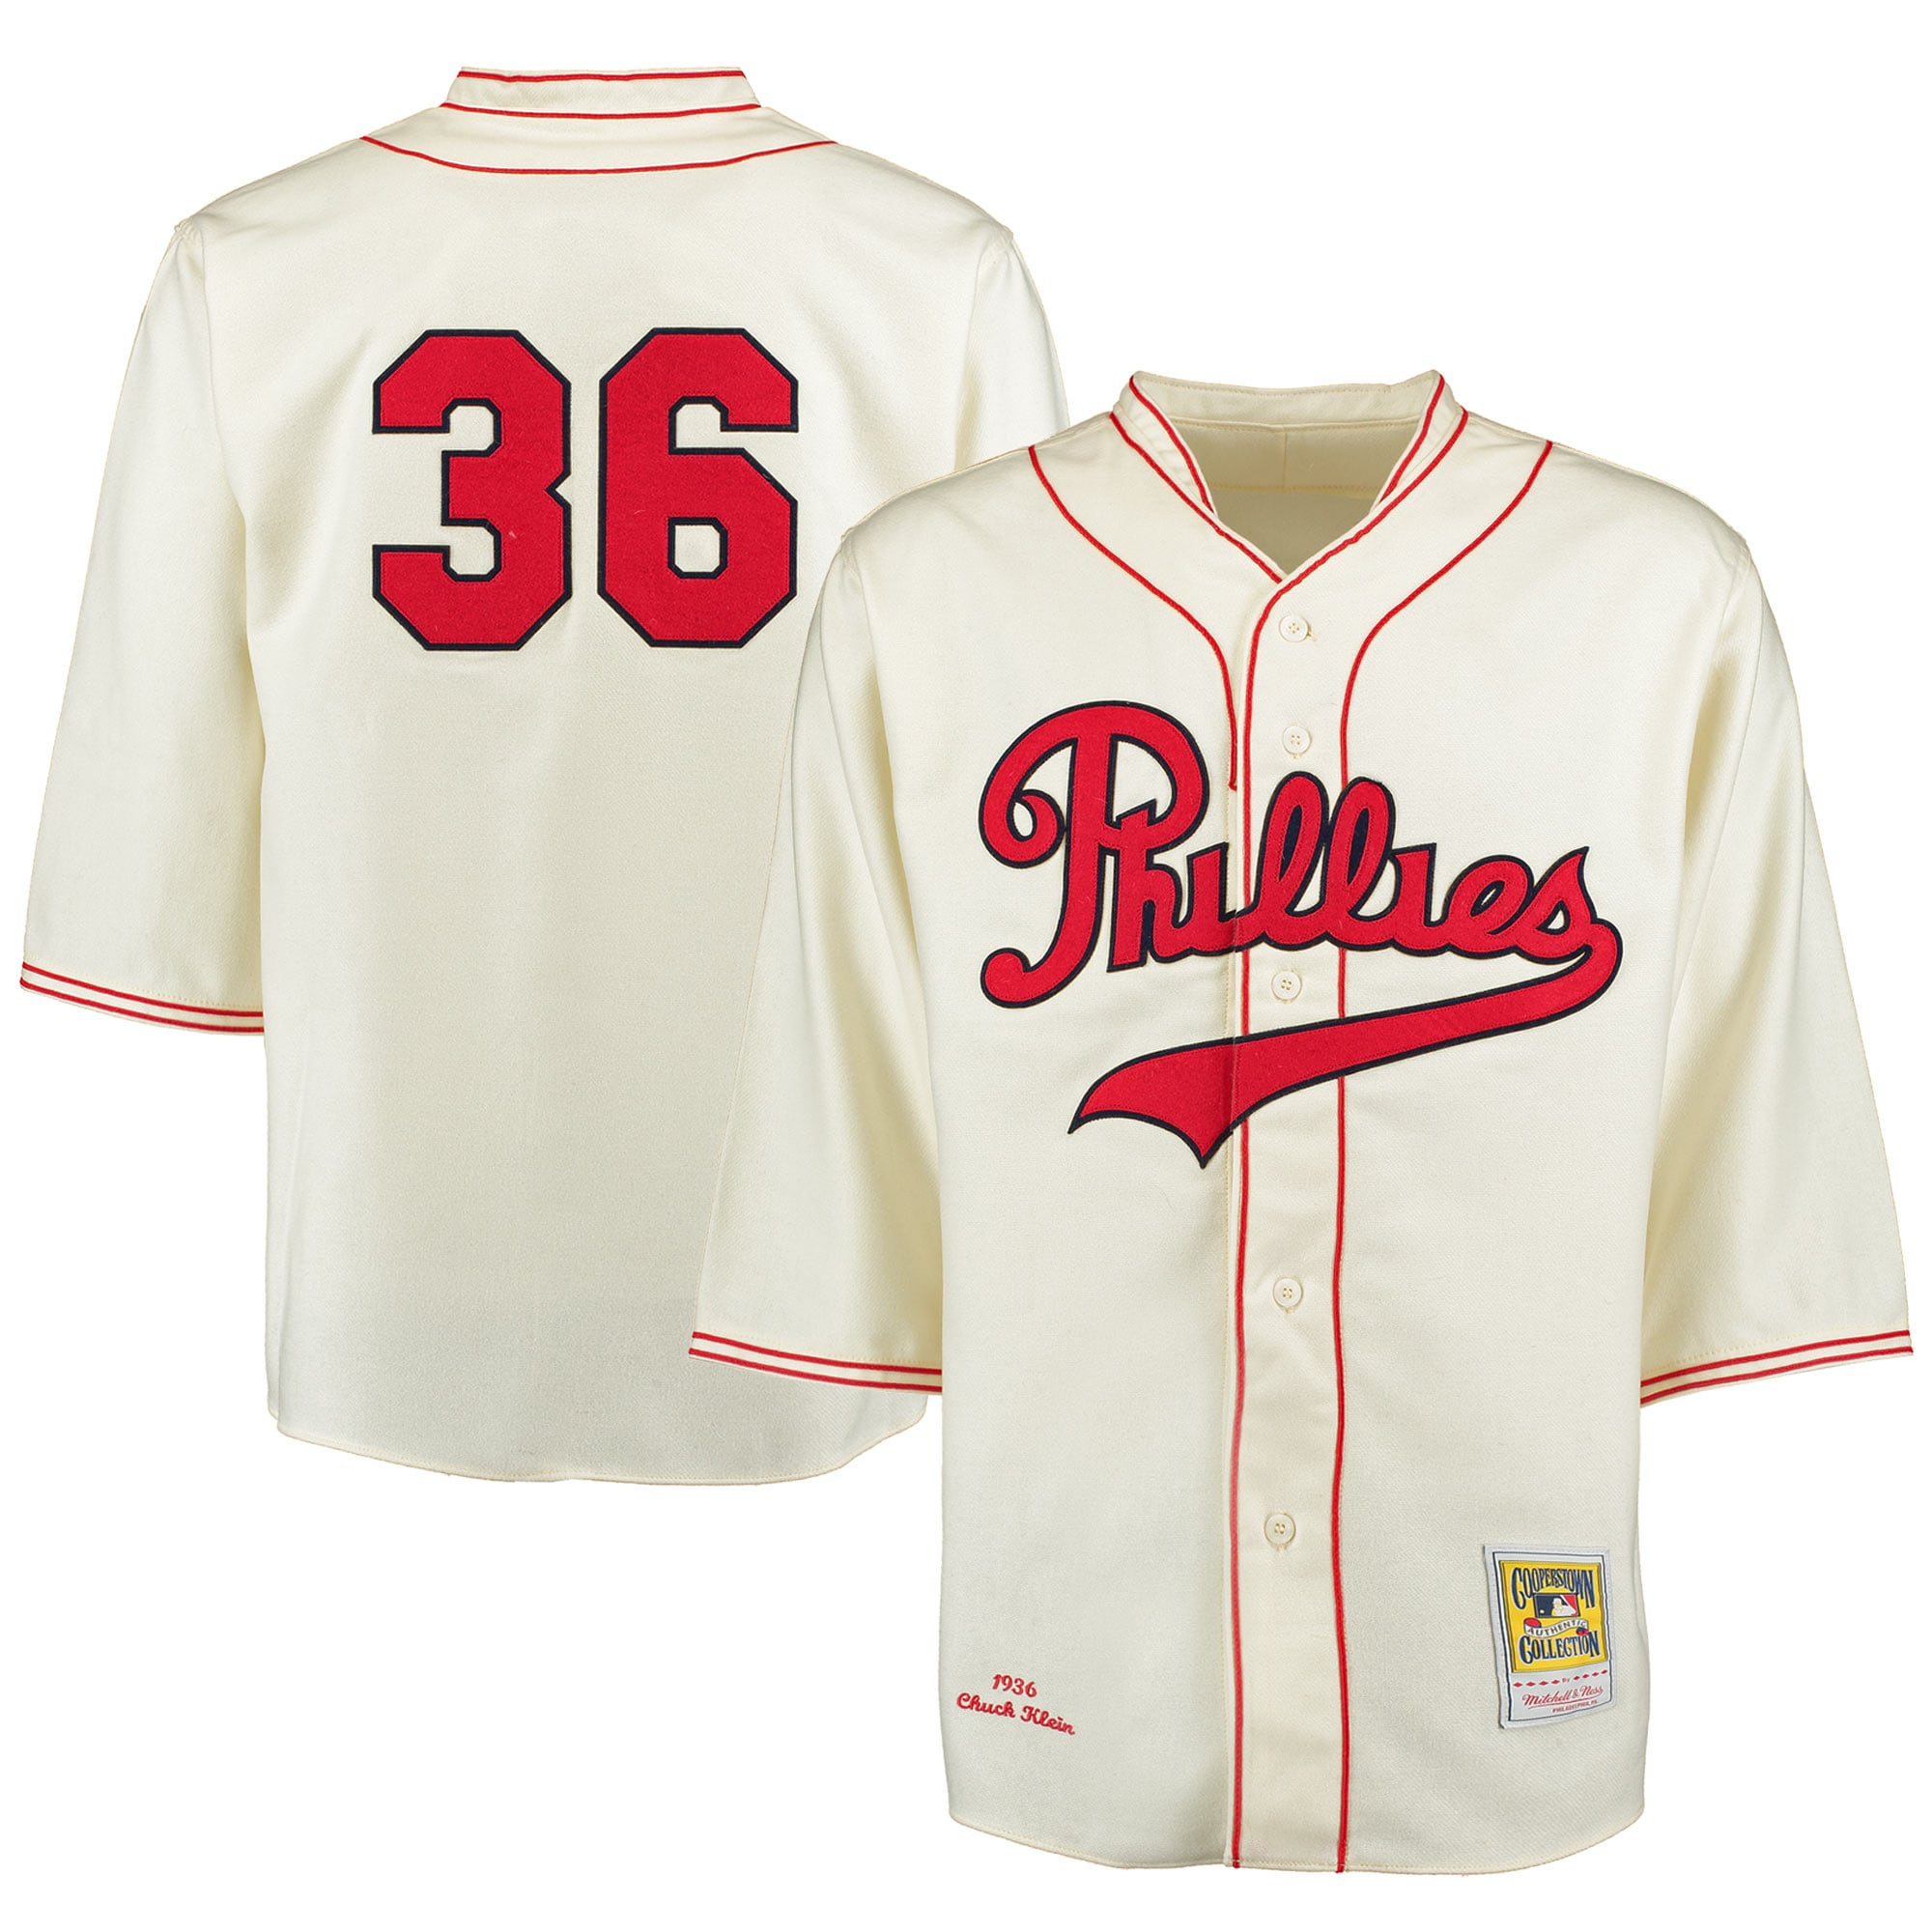 Chuck Klein 1936 Philadelphia Phillies Mitchell & Ness Authentic Throwback Jersey - Cream